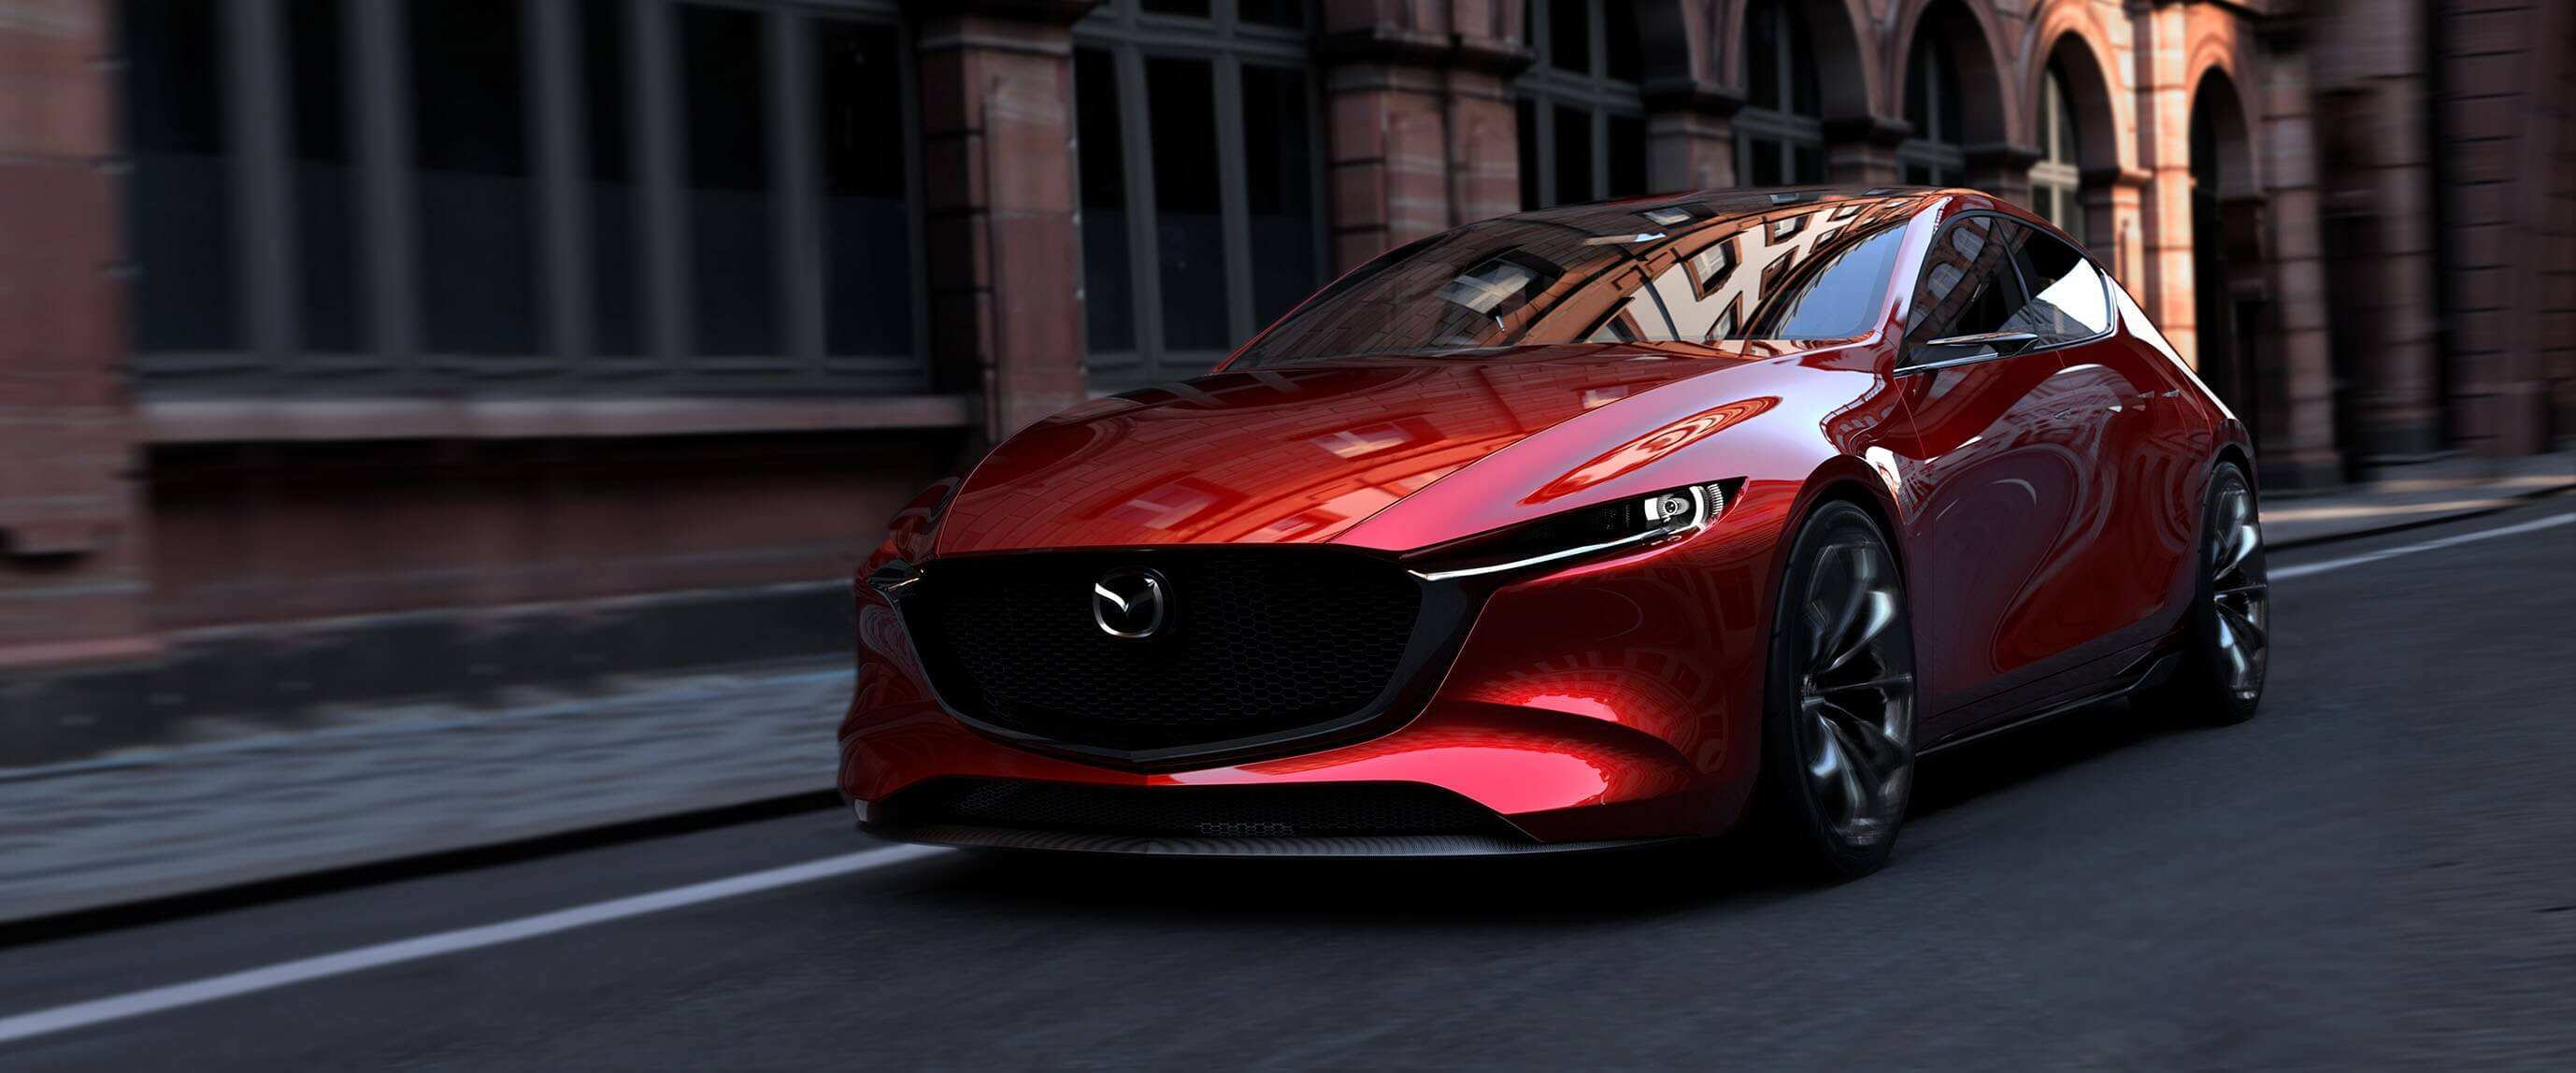 41 Best Review All New Mazda 6 2020 Photos with All New Mazda 6 2020